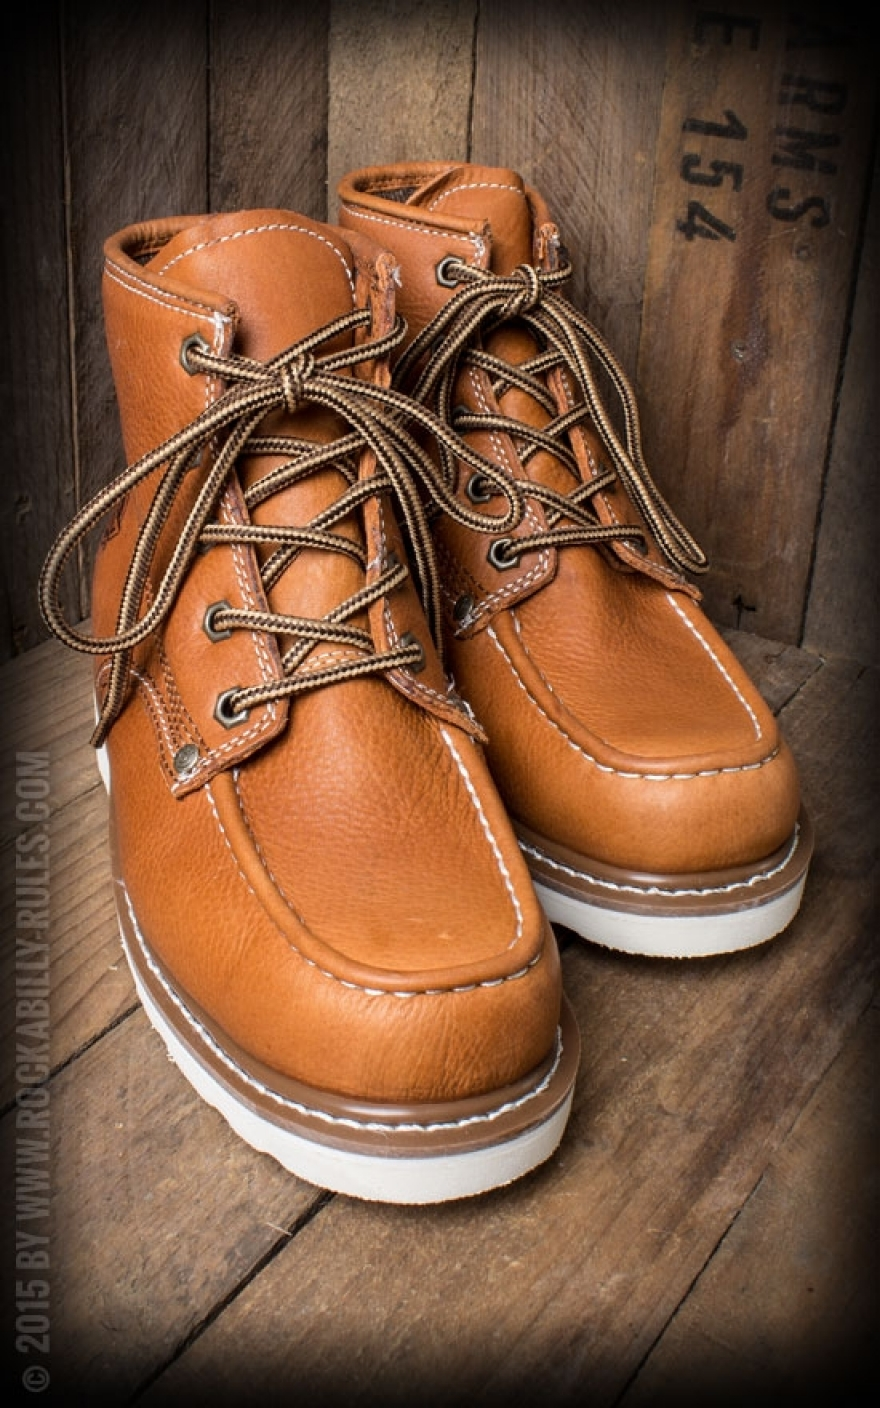 IllinoisBottes Courtes Dickies Dickies Homme Dickies Homme Courtes IllinoisBottes edBCxo